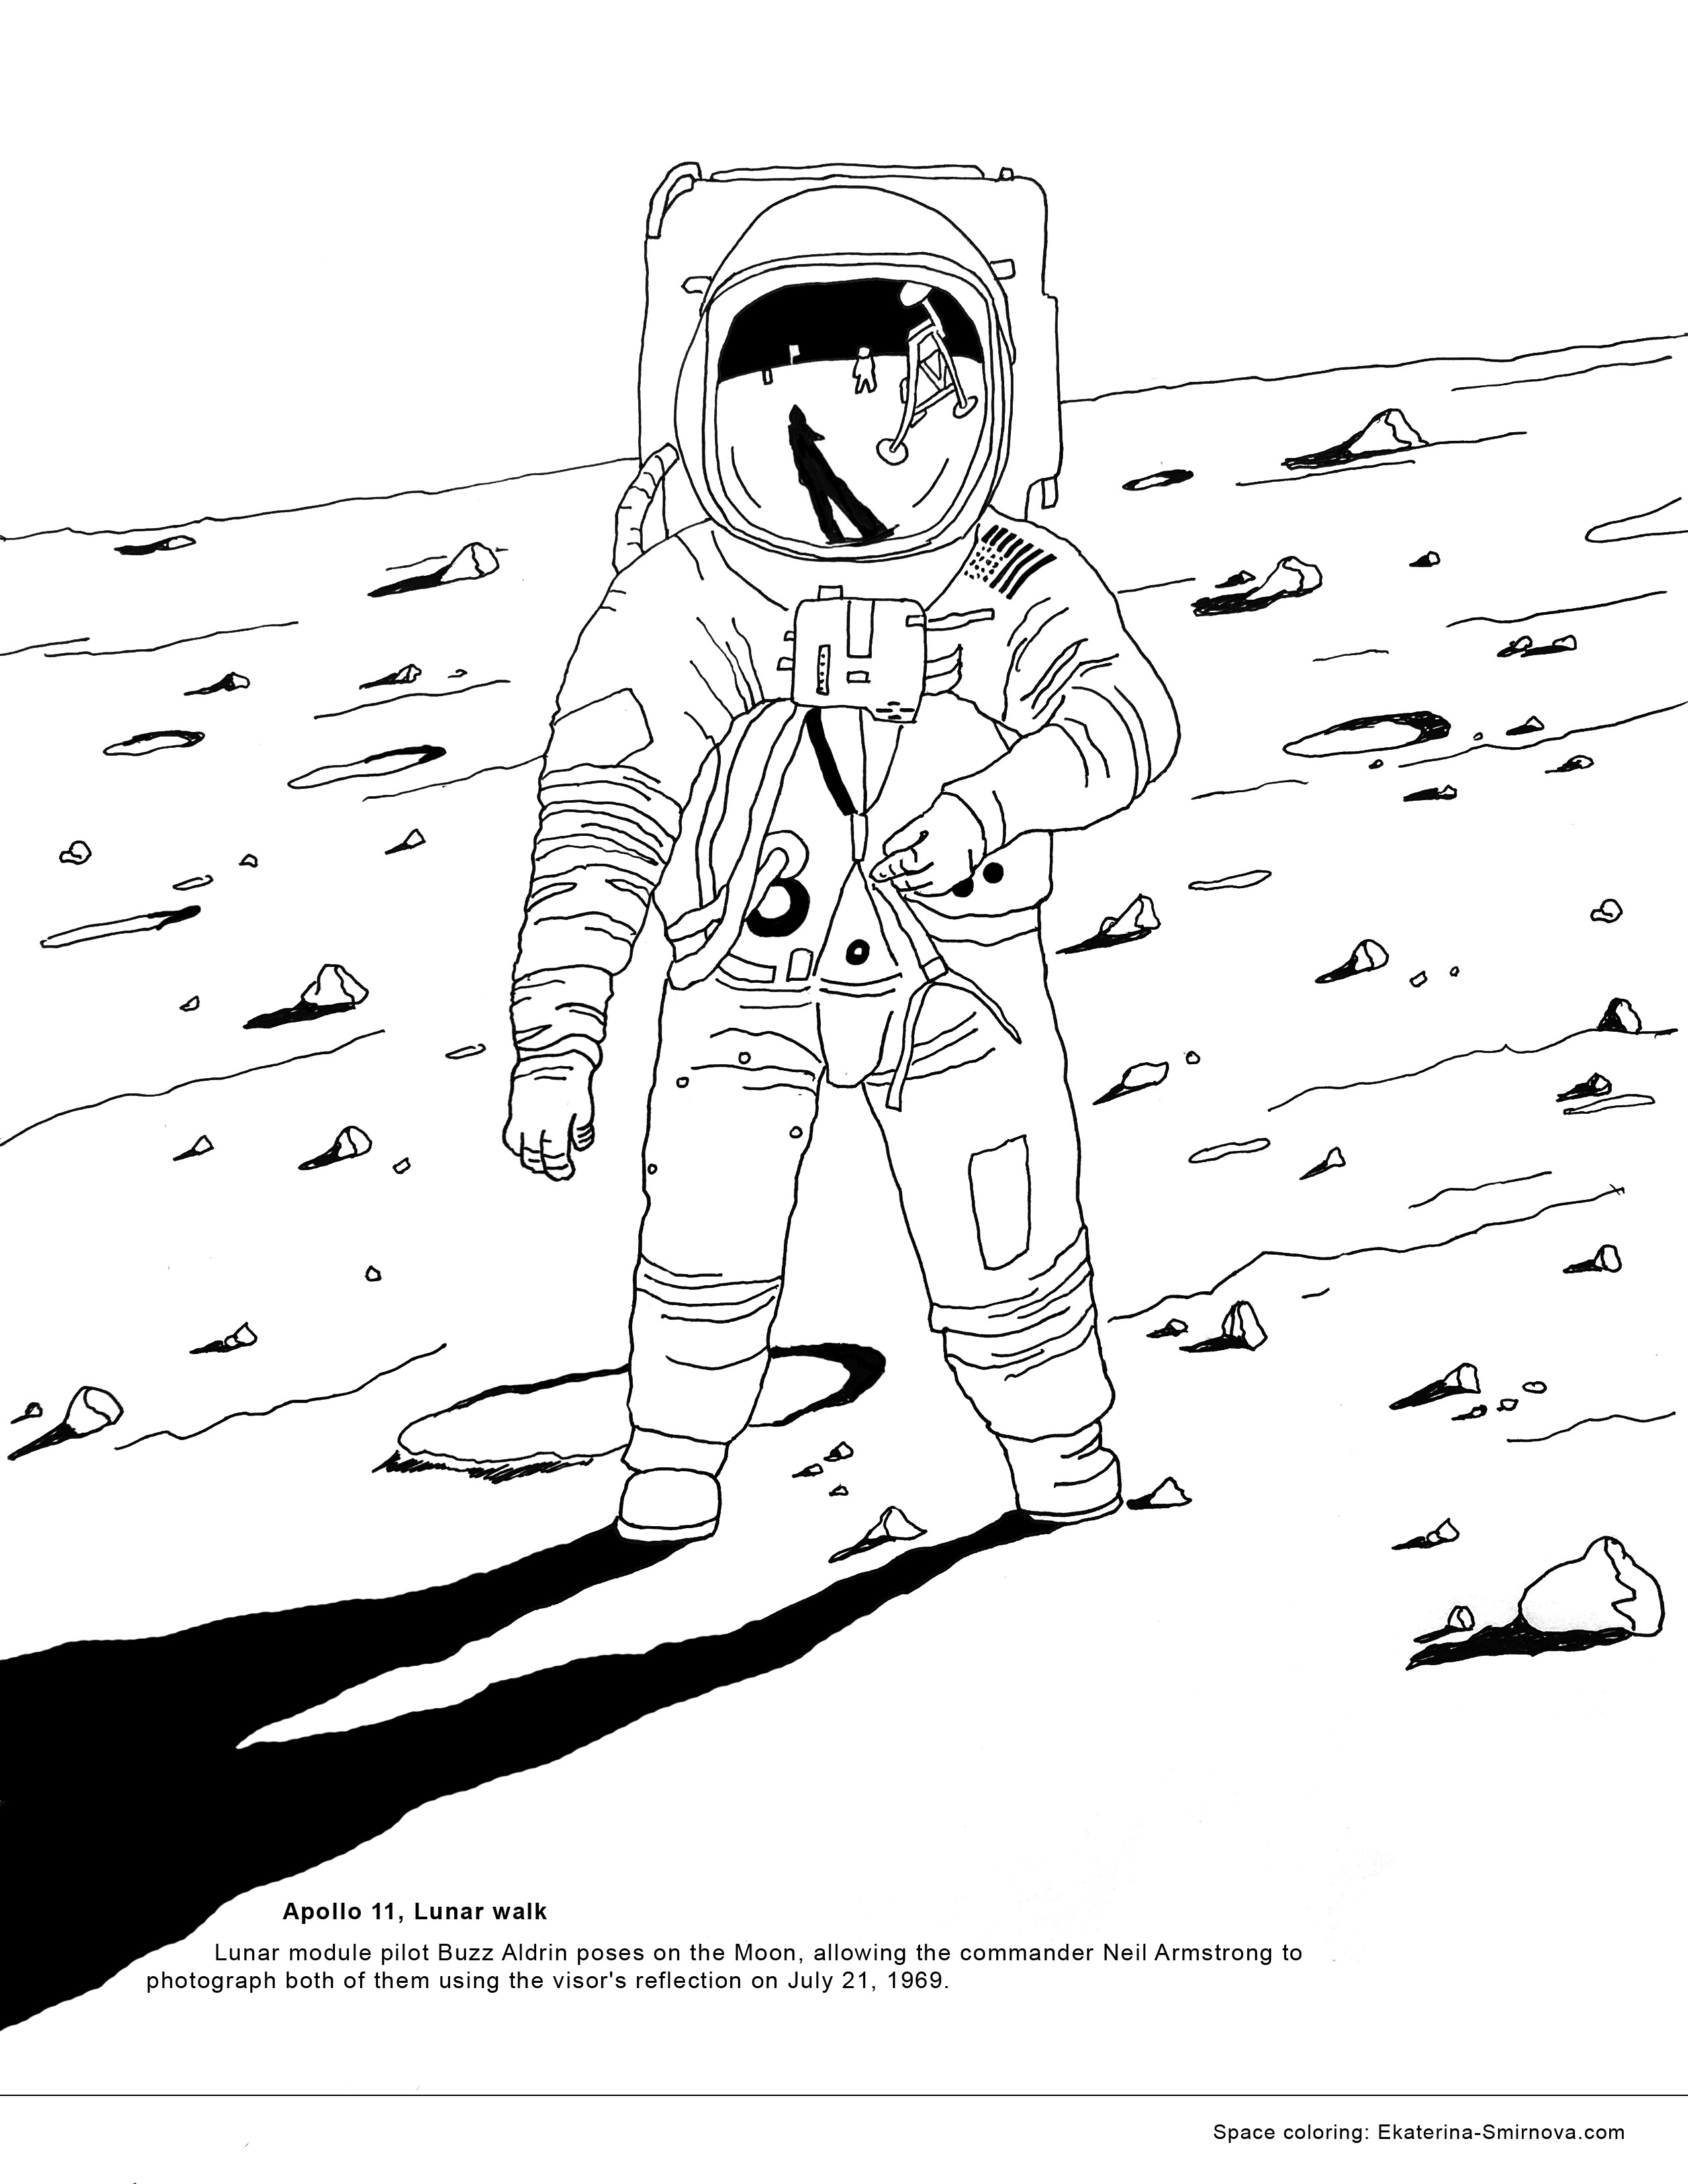 coloring pages of space walkers | Coloring Book for Space Missions - Juno, Rosetta, Cassini ...